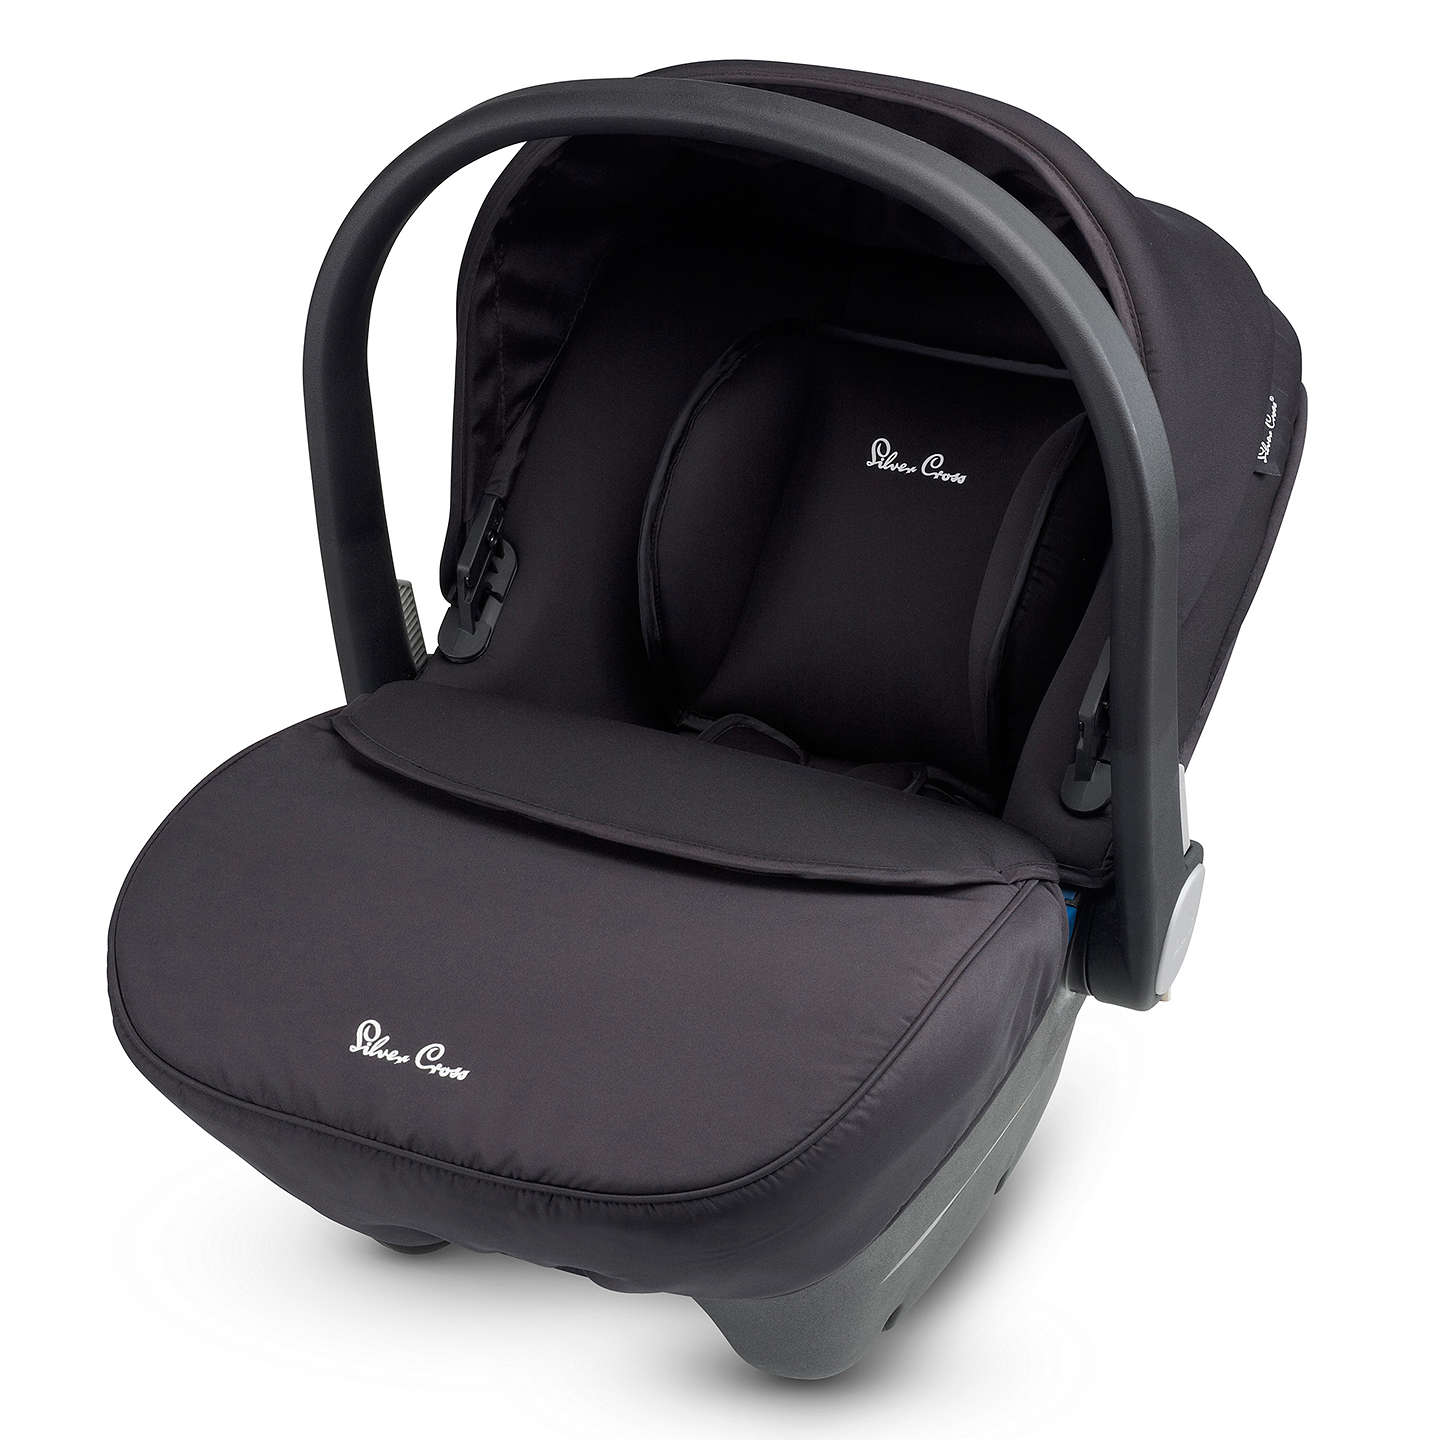 BuySilver Cross Simplicity Group 0+ Baby Car Seat, Black Online at johnlewis.com